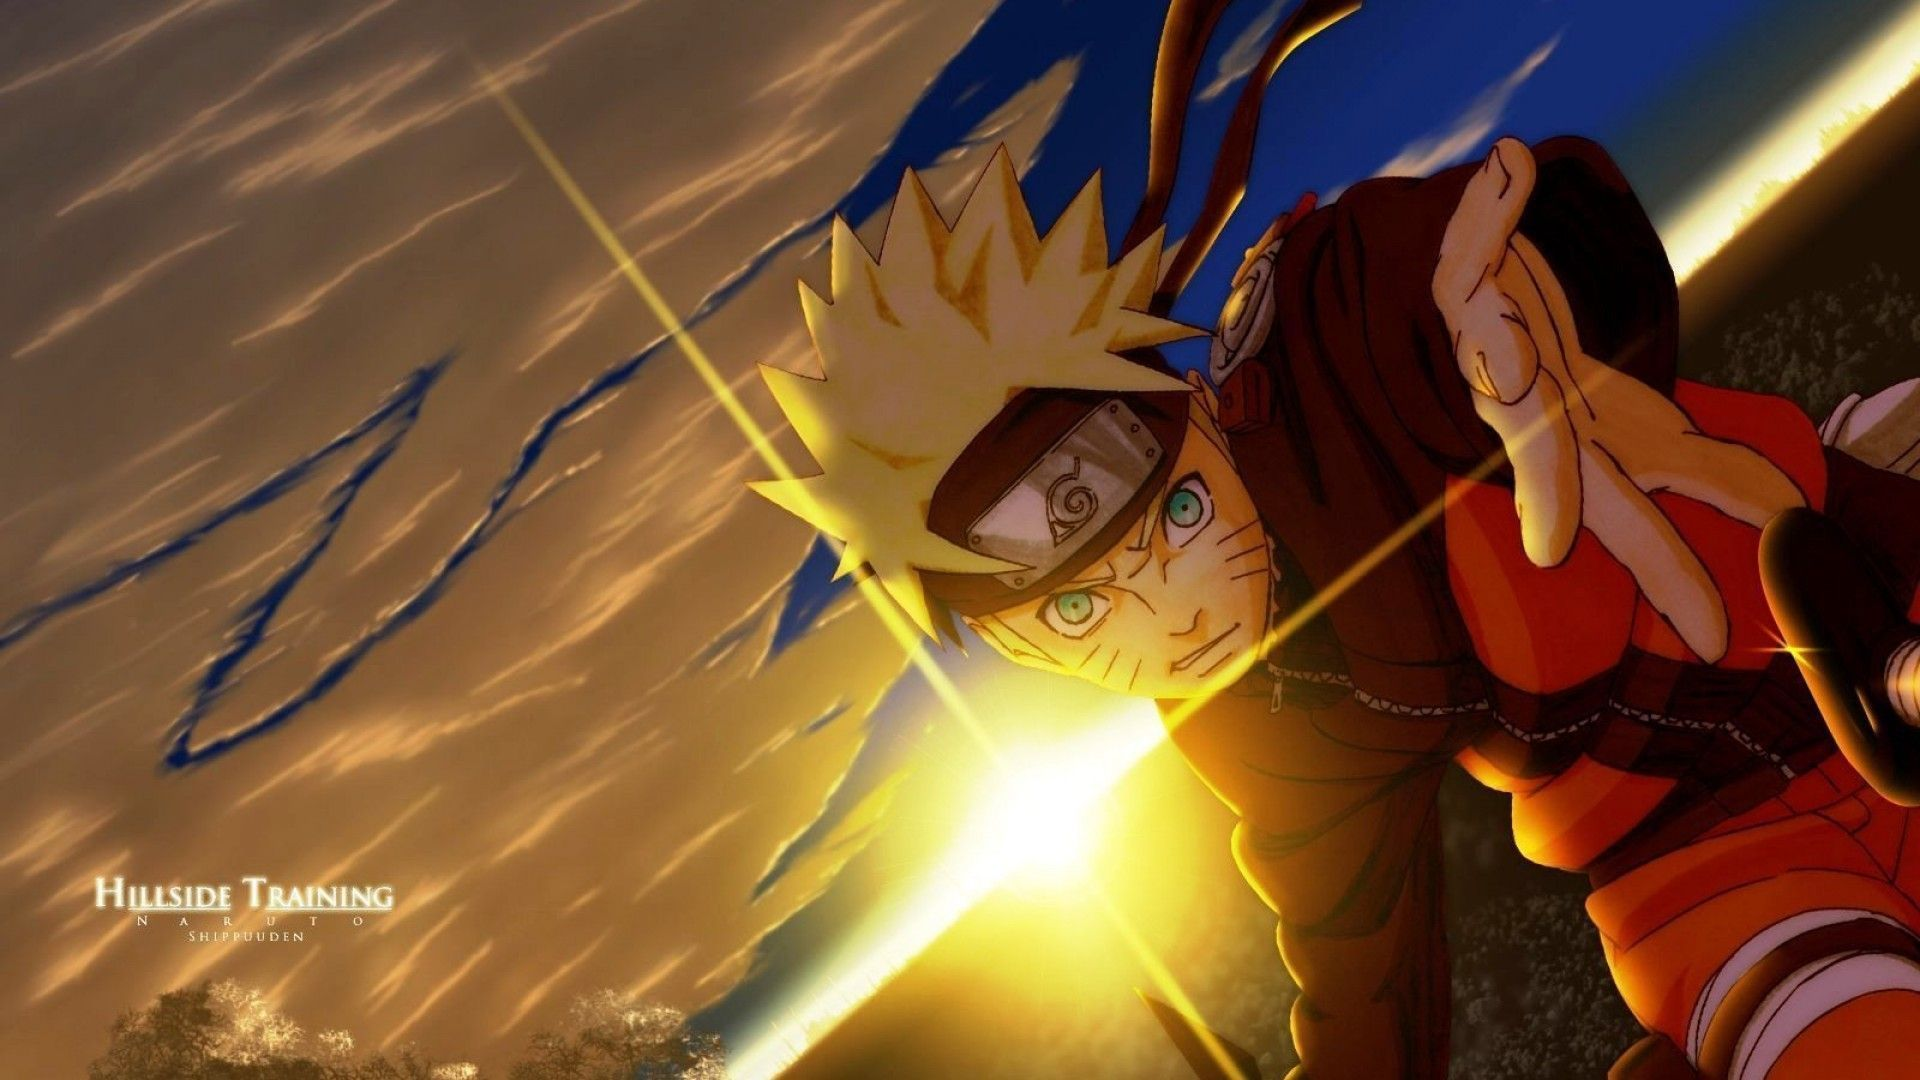 Rasengan Wallpaper Hd Wallpapers and backgrounds Download